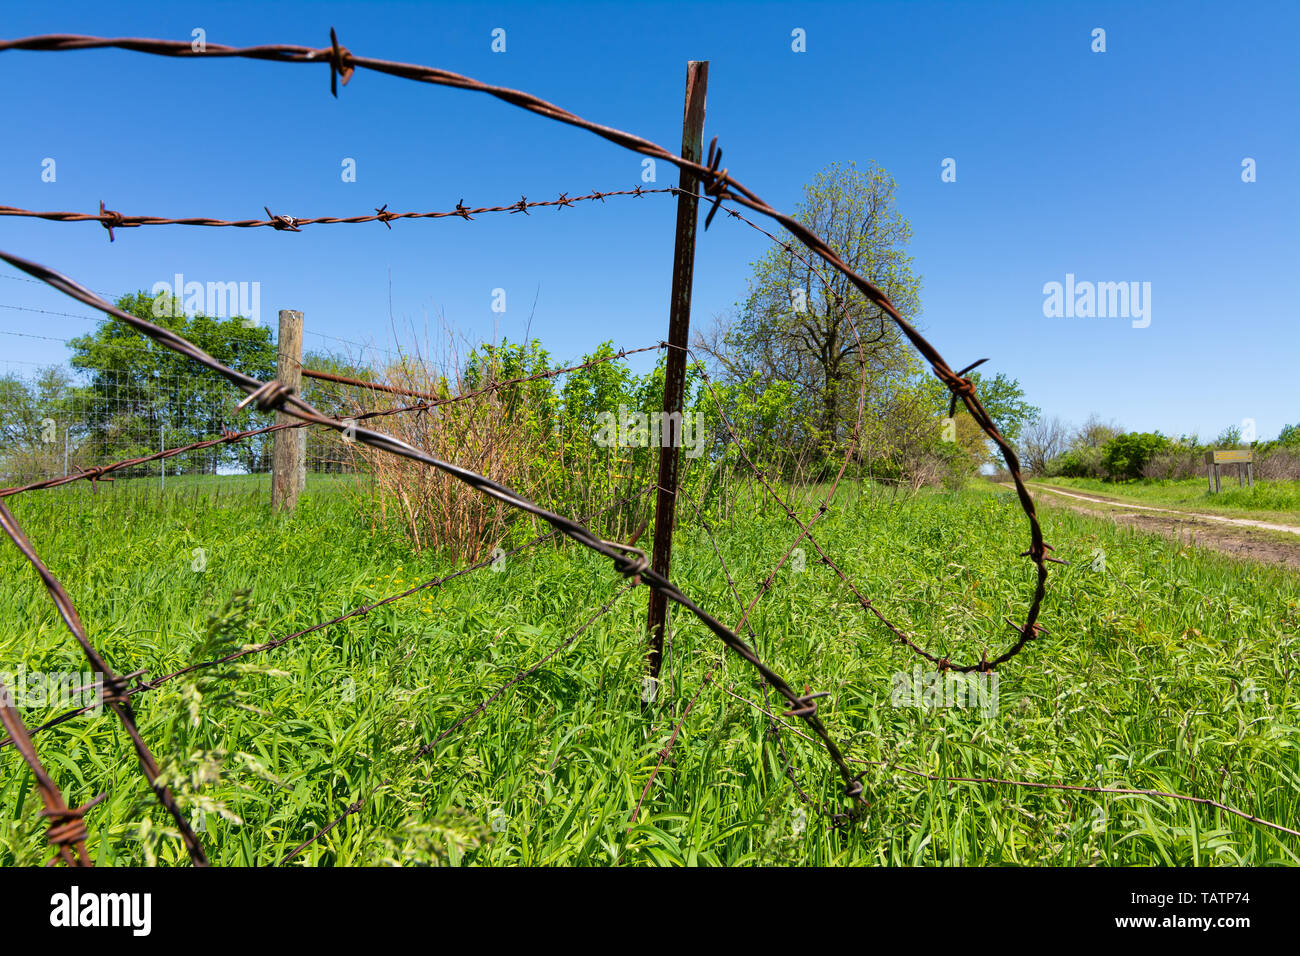 Rusted barbed wire fence with green field and blue skies in the background. - Stock Image